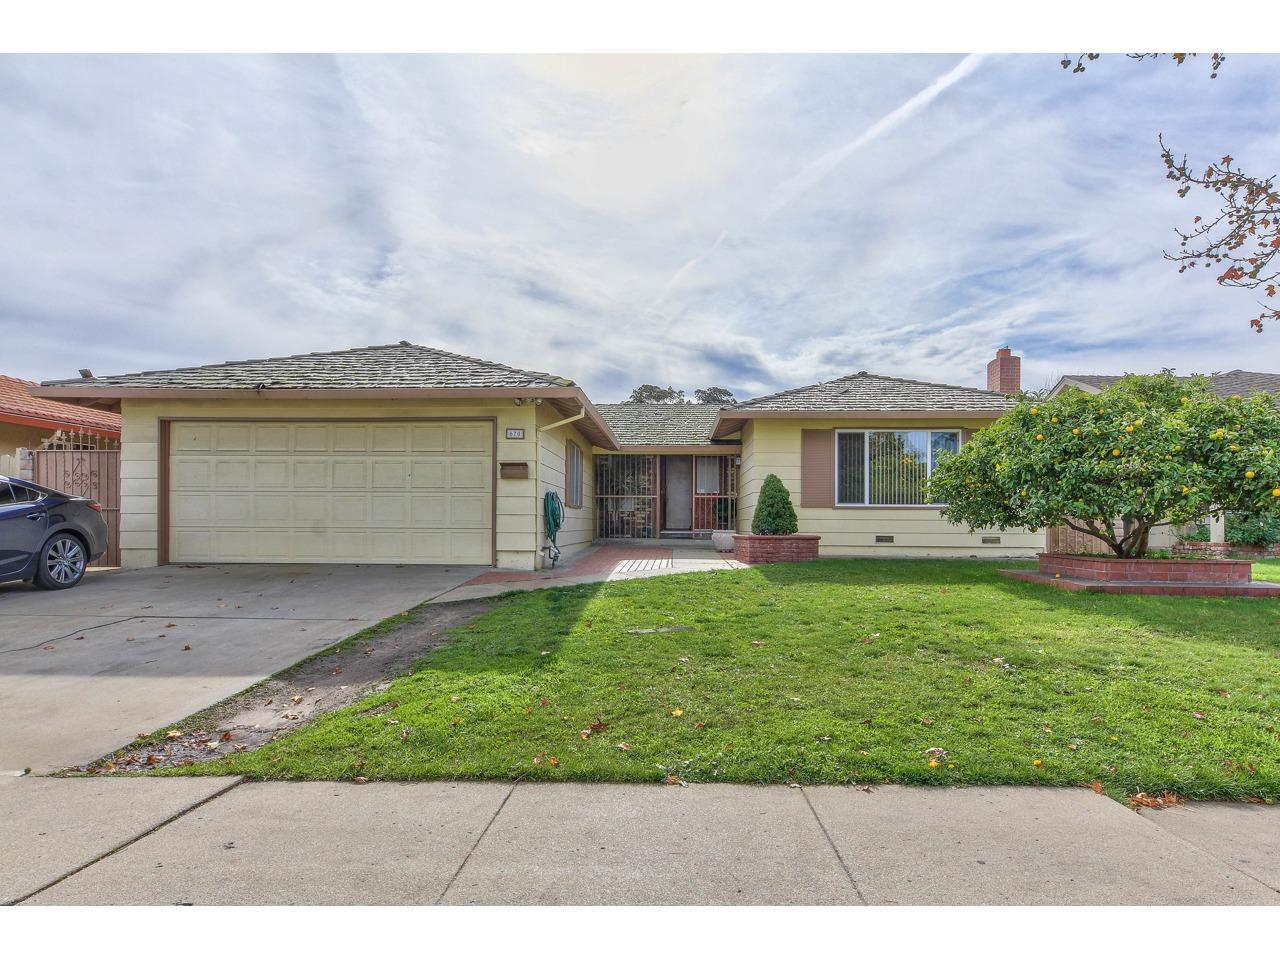 670 Saint Edwards Drive Salinas, CA 93905